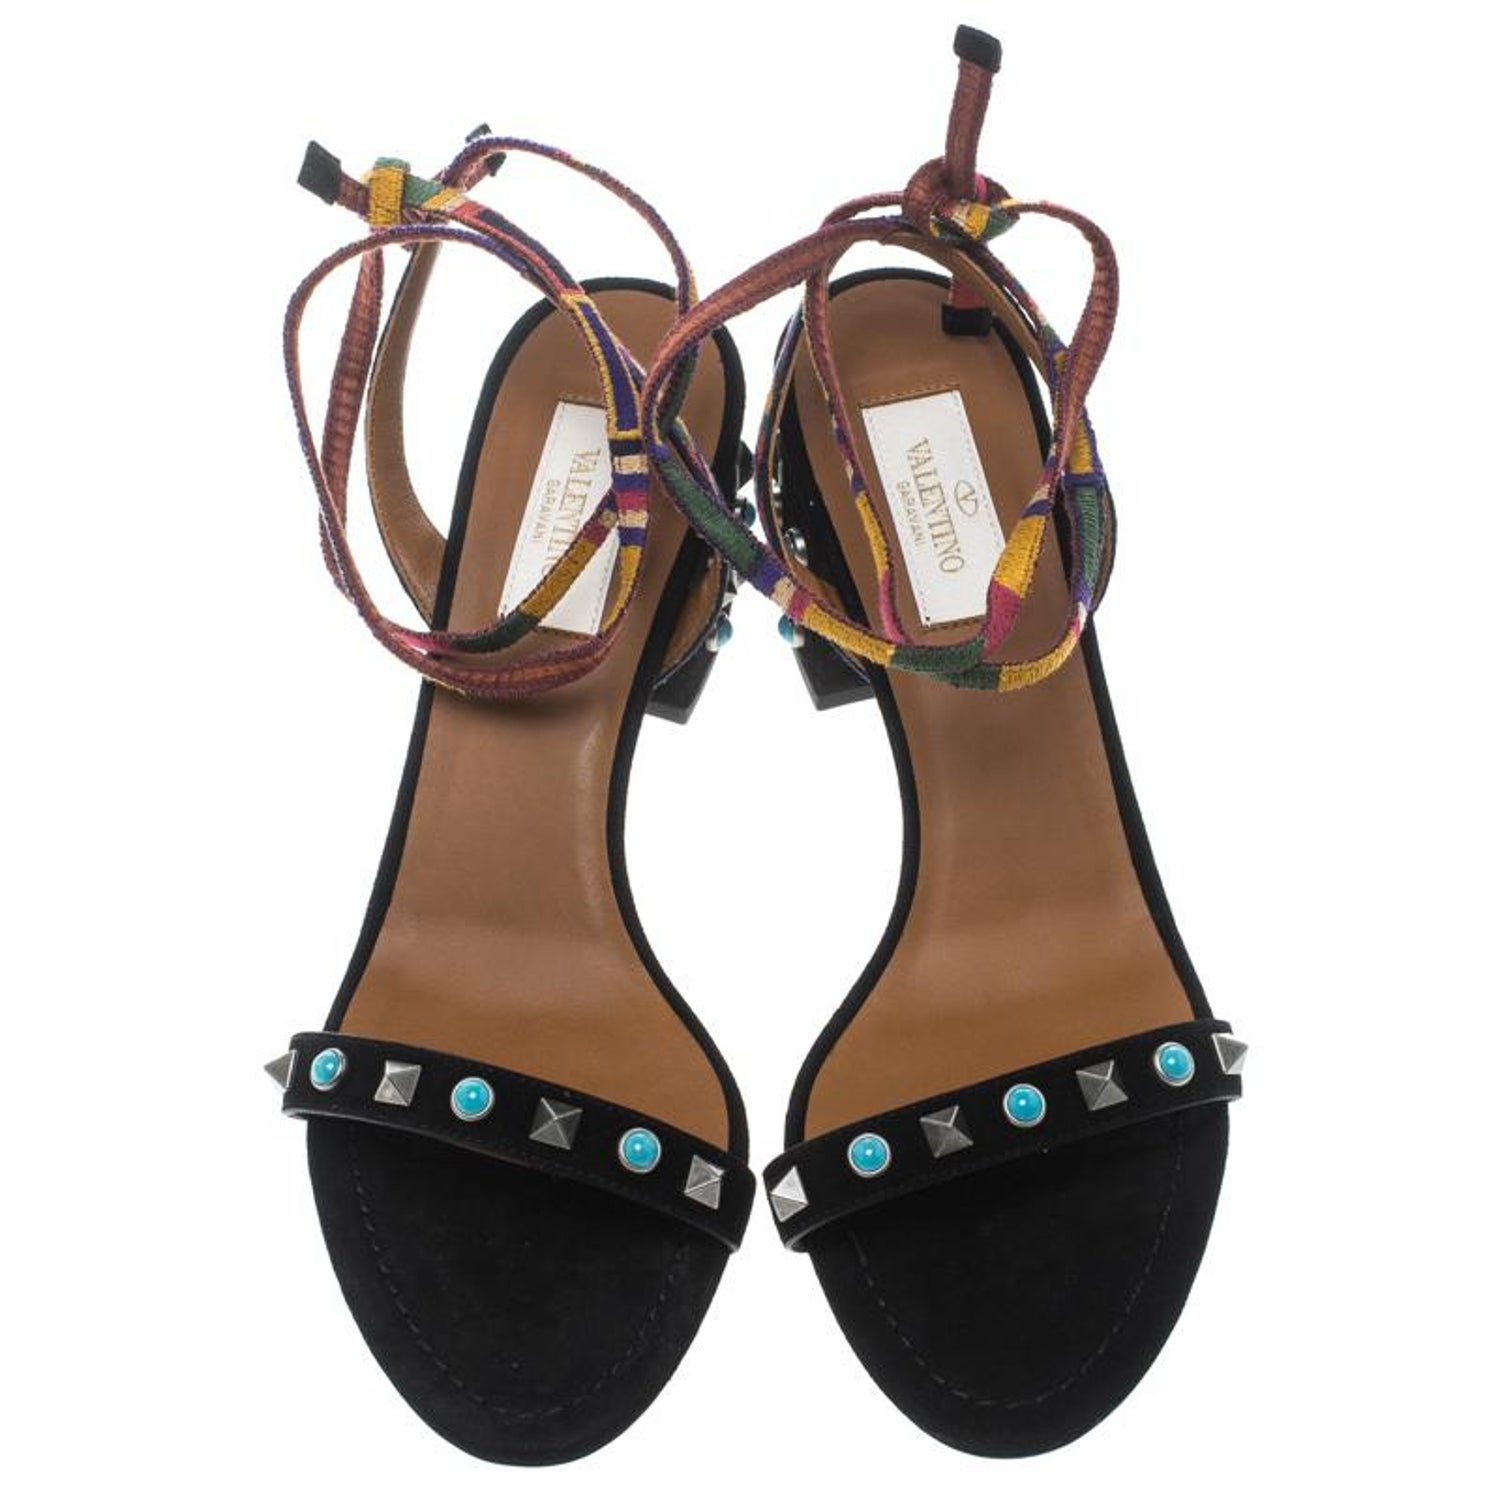 fd2e4524c0c0 Valentino Black Suede Rockstud Rolling Block Heel Ankle Wrap Sandals Size  39 For Sale at 1stdibs